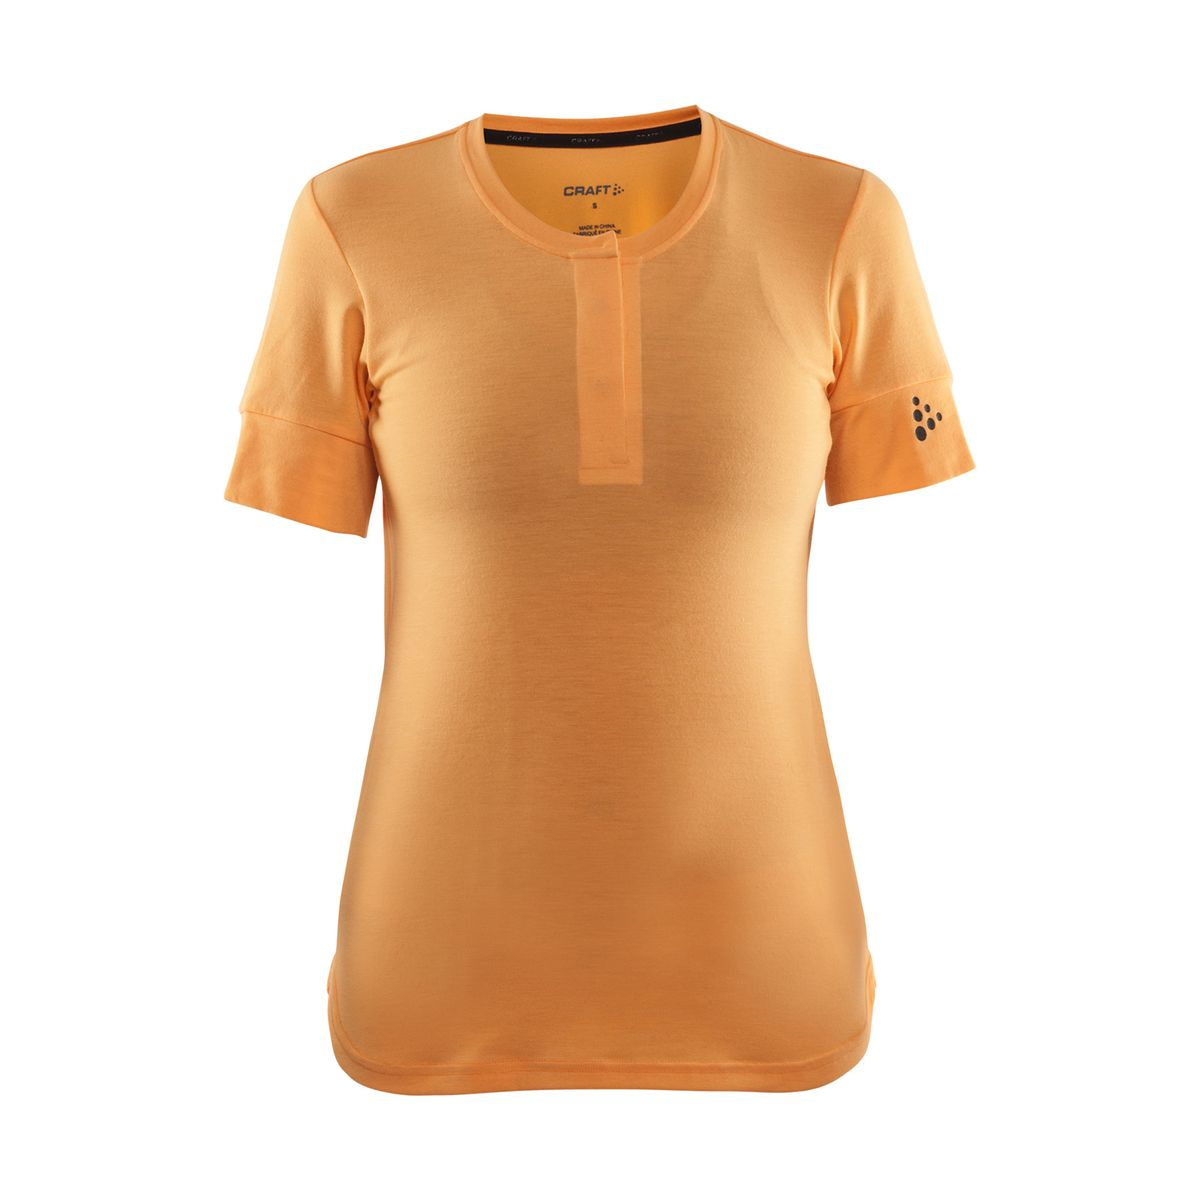 RIDE JERSEY W women's shirt